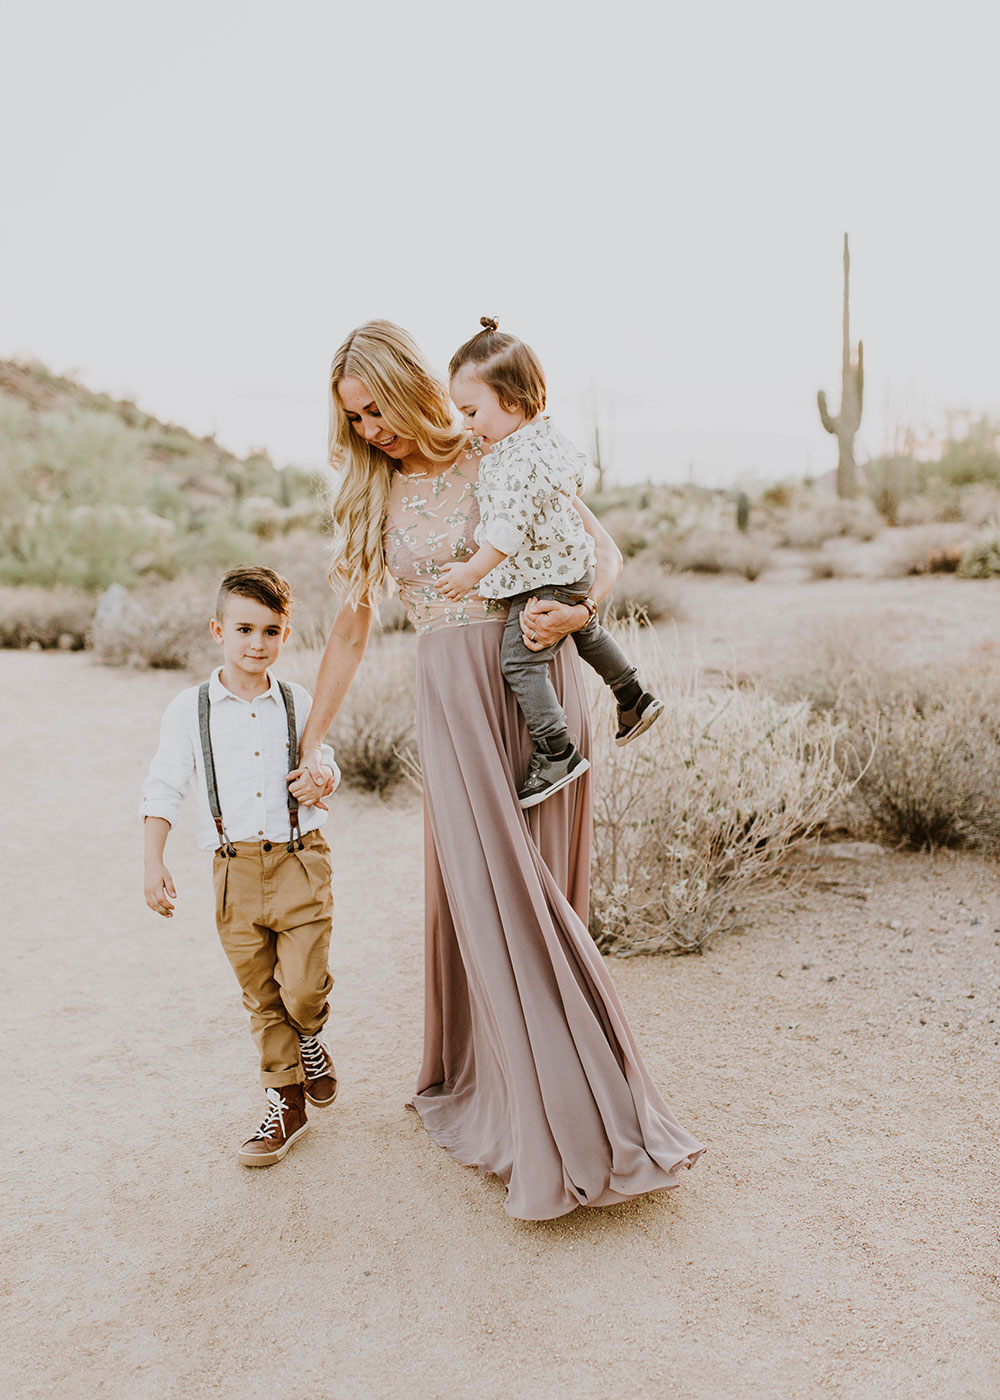 mama and her boys in this beautiful desert scene. #familyphotos #bohovibes | thelovedesignedlife.com